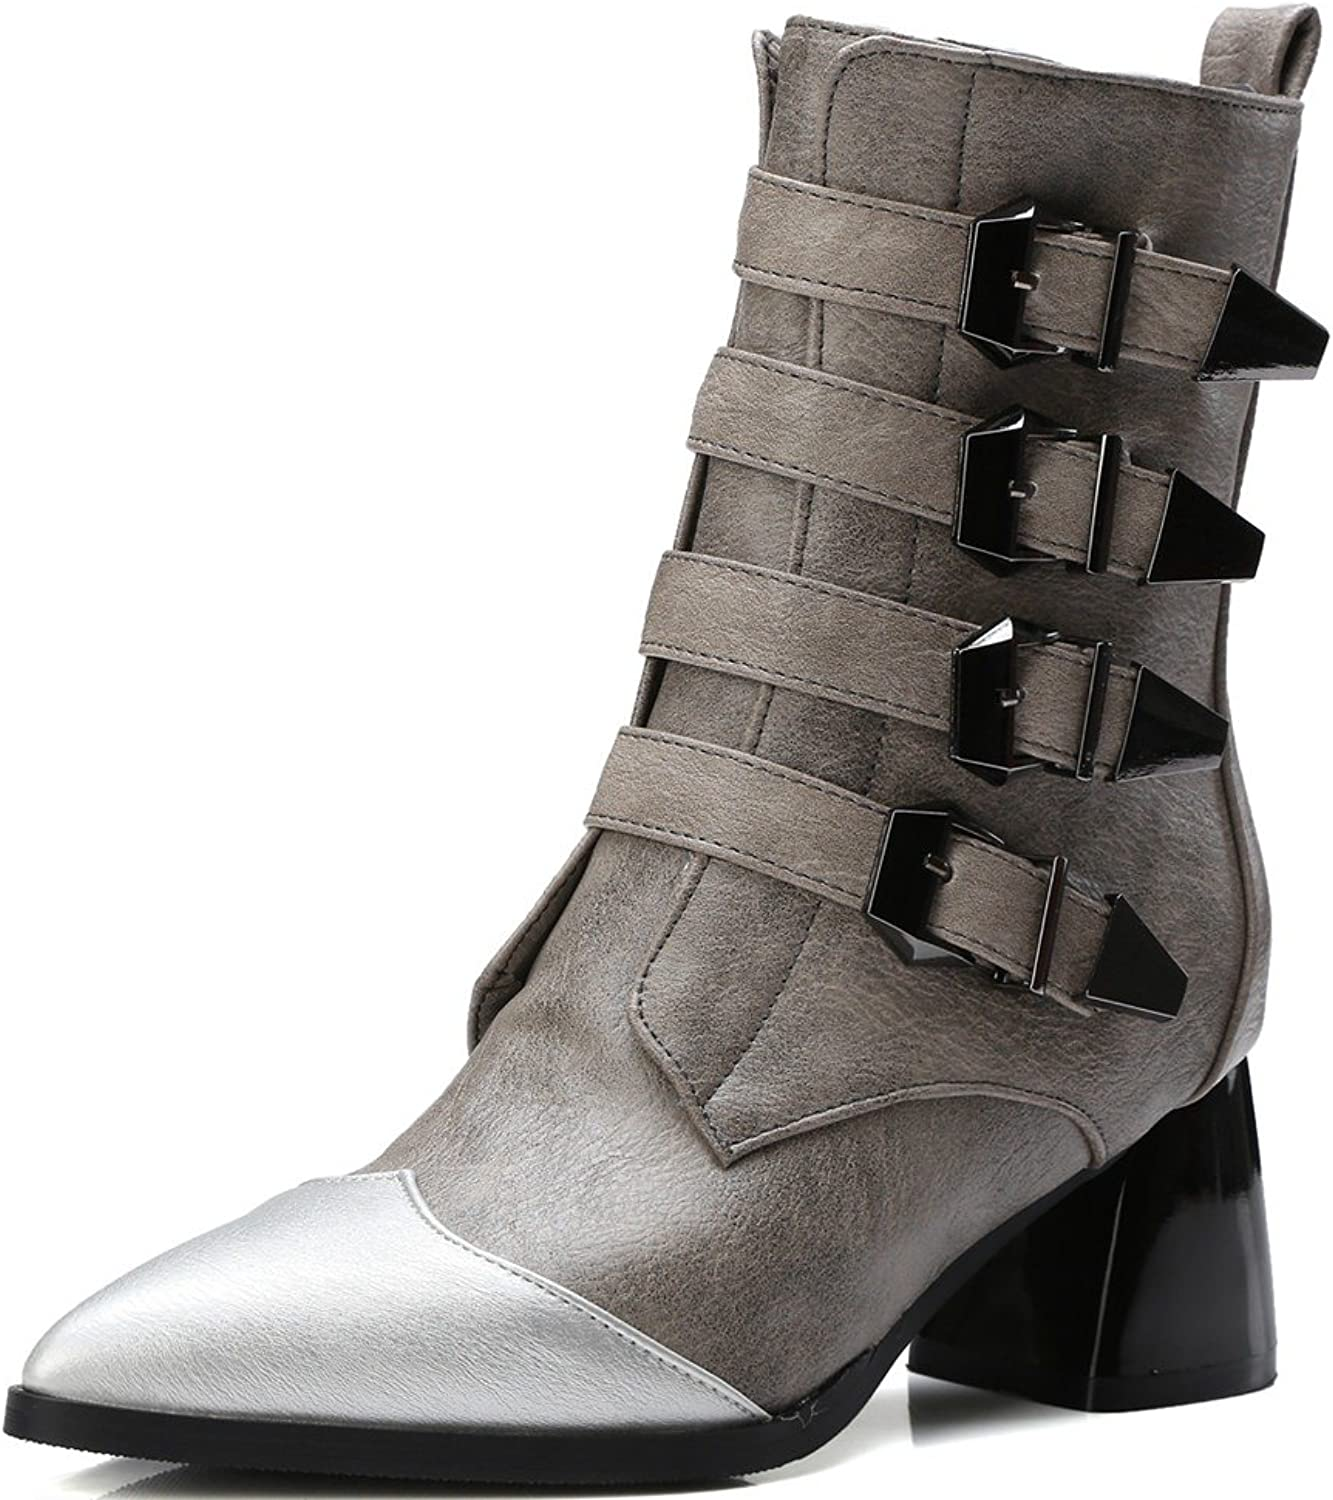 DecoStain Women's Belt Buckle Pointed Mid-Heel Martin Boots Black Boots Grey Boots